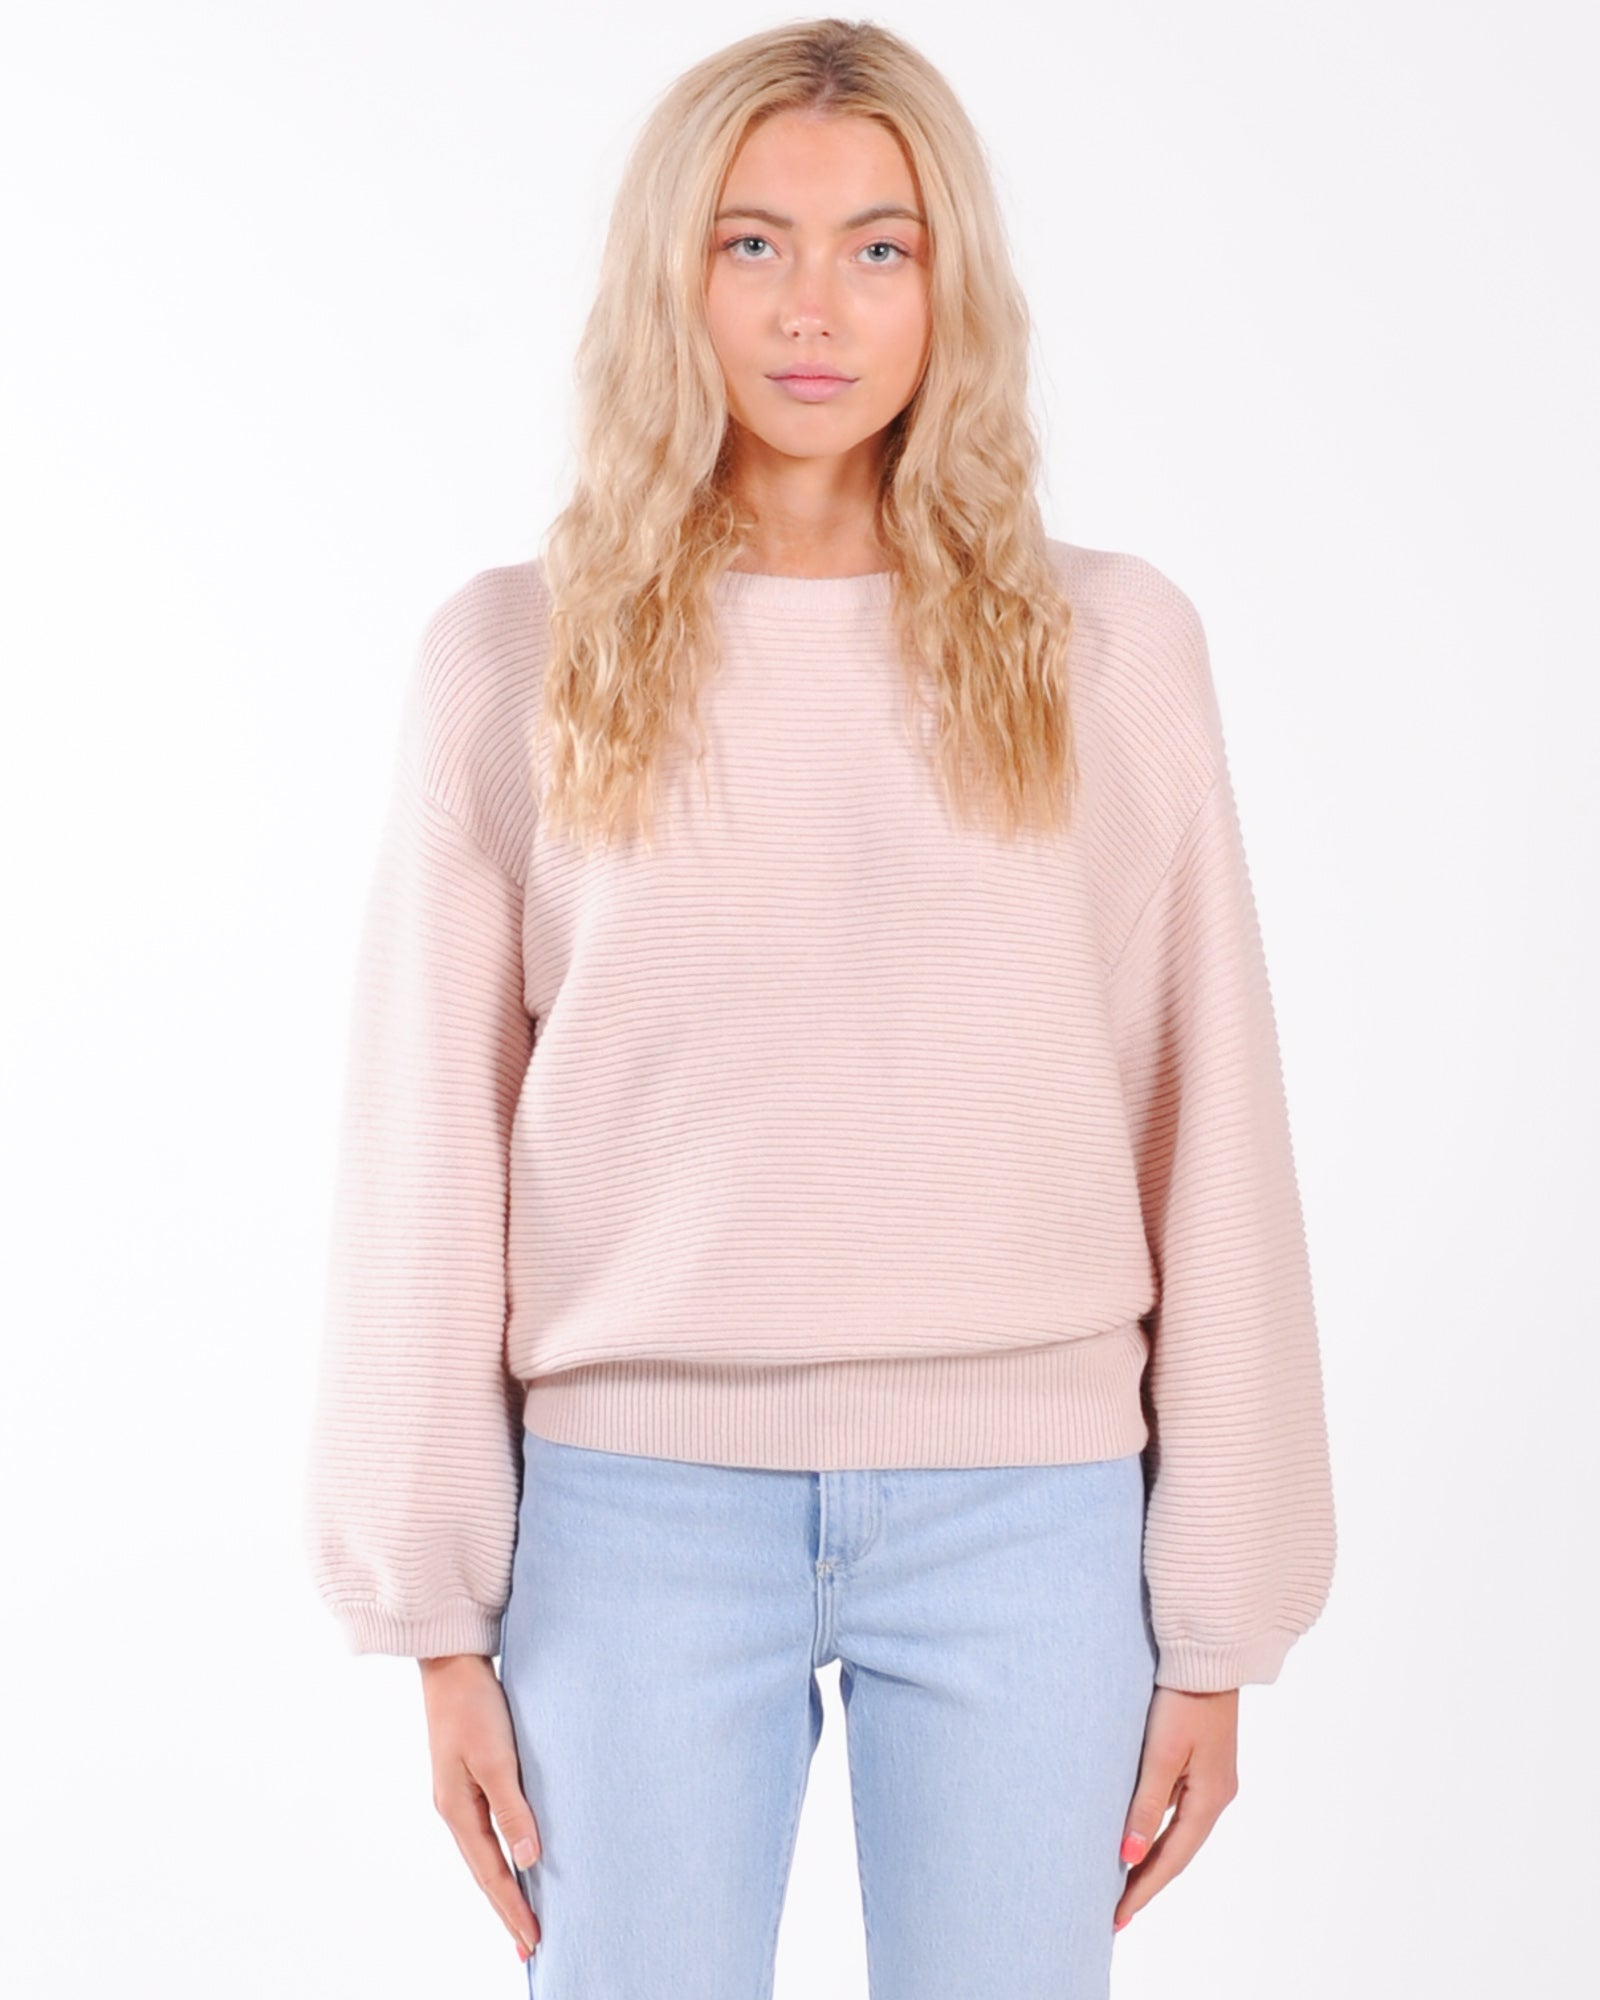 Rule Breaker Knit Jumper - Blush